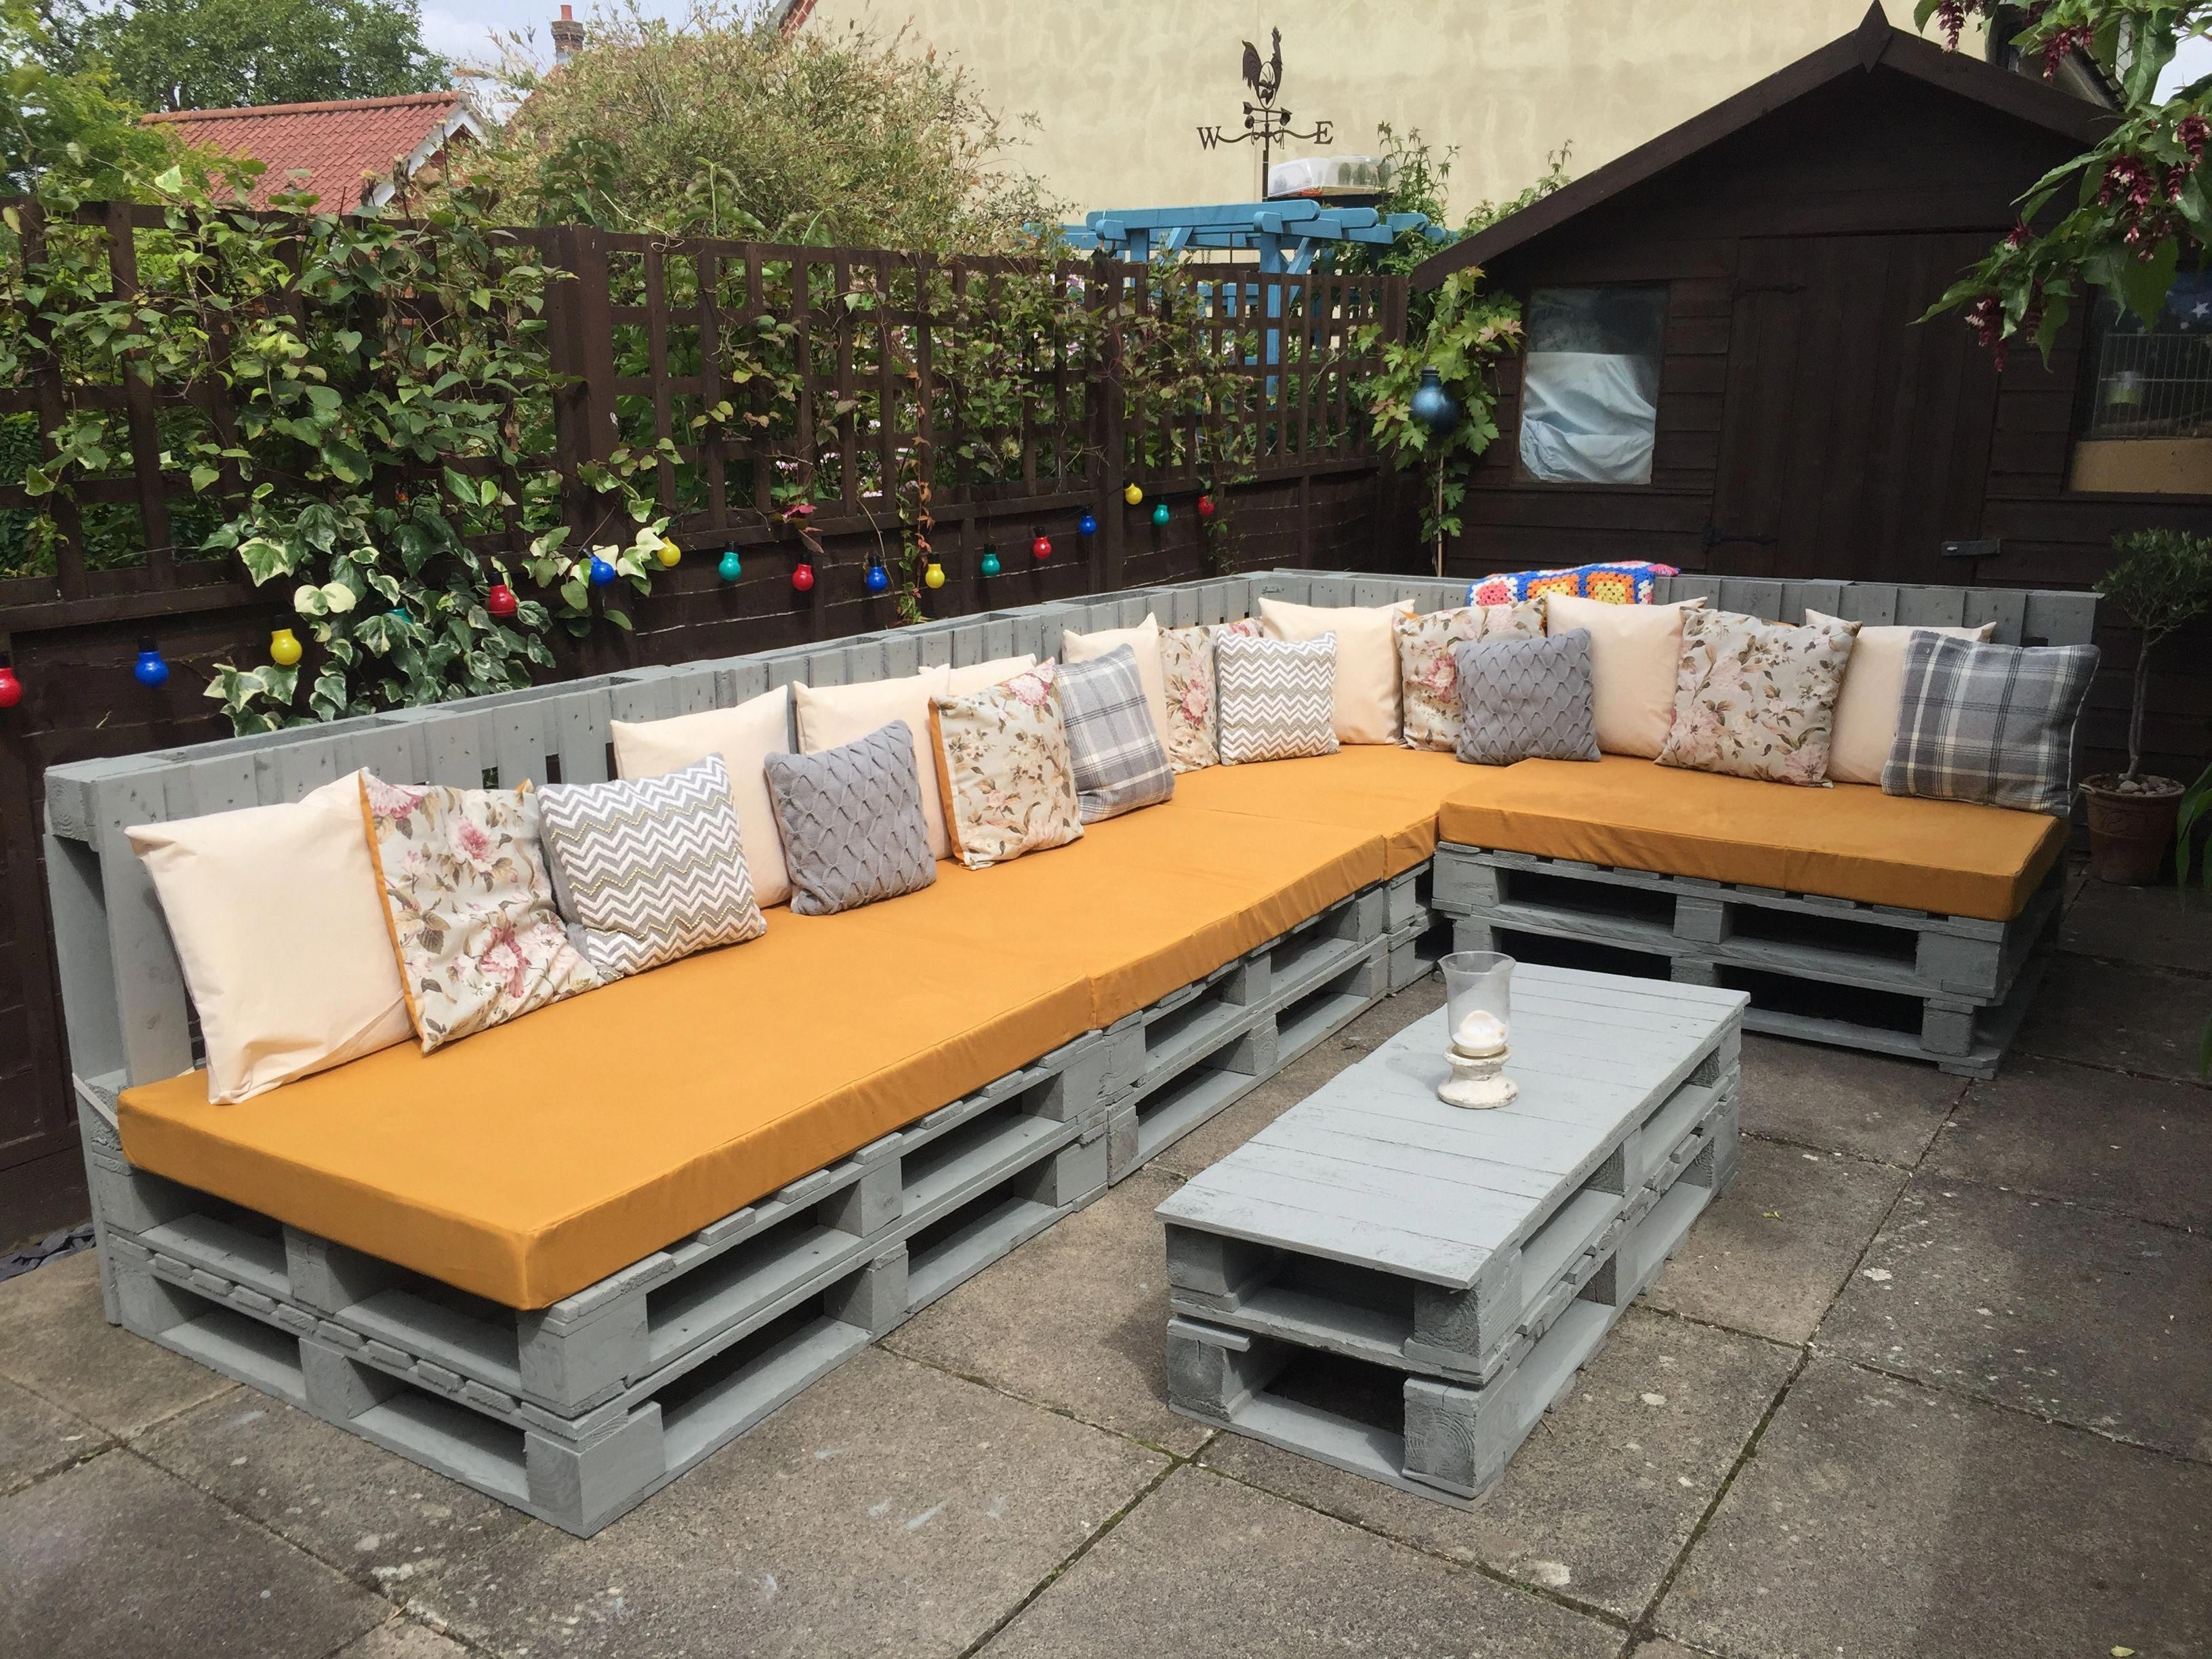 Skid Couch How To Make Patio Furniture Out Of Pallets Garden